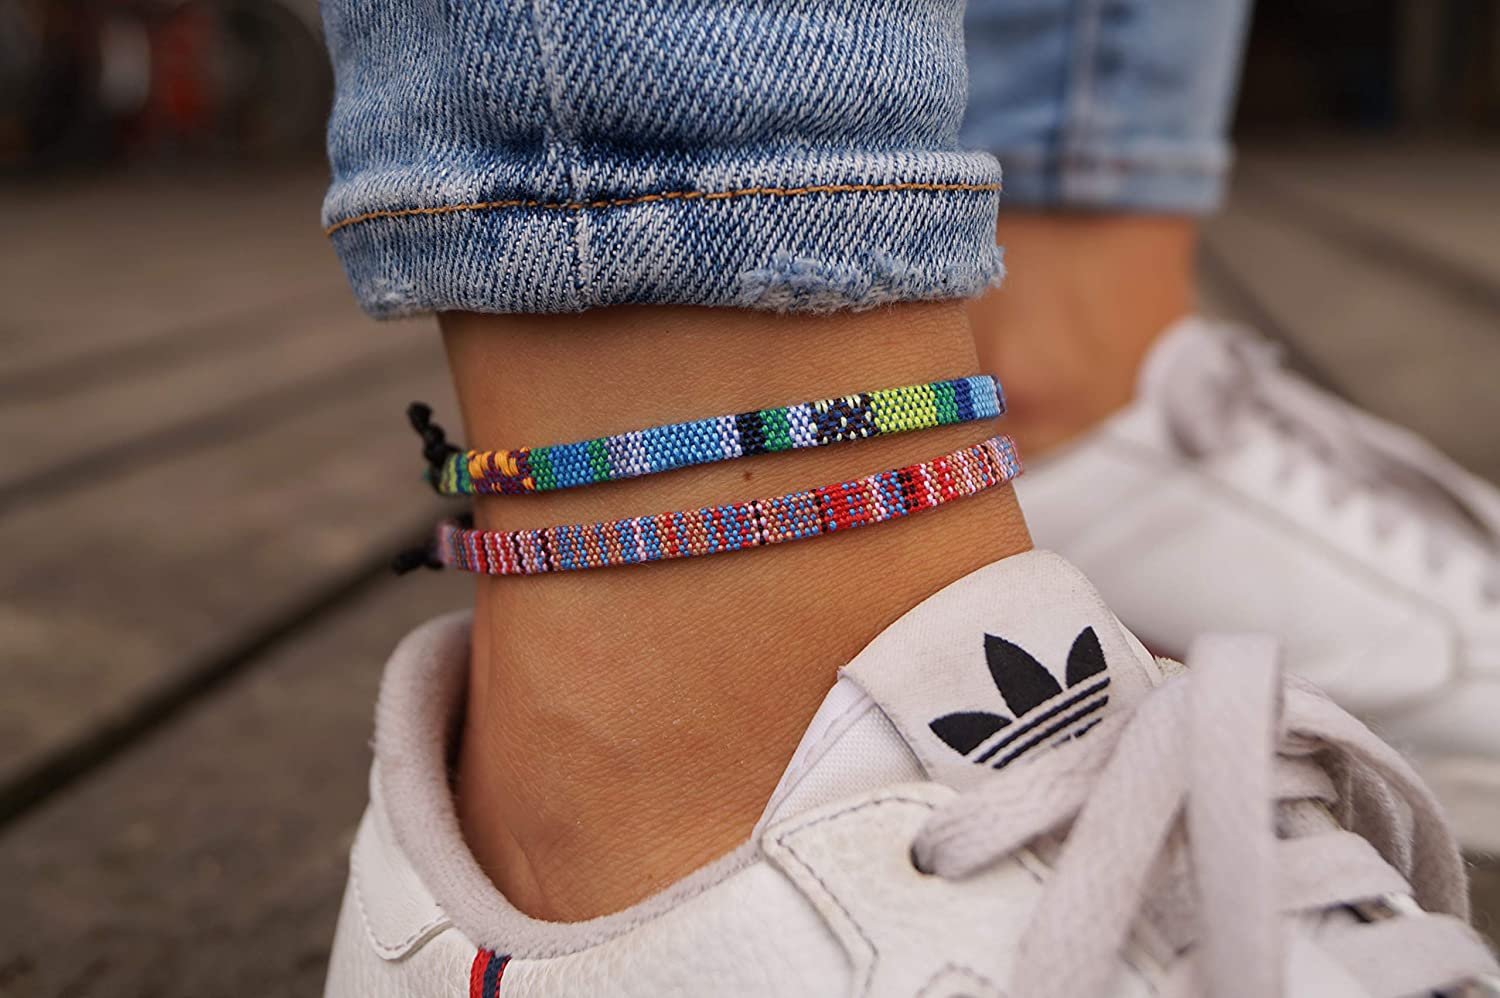 Ethno Ankle Bracelet Set of 2 for Women and Men 100/% Waterproof and Adjustable Thin String Rope Anklet 2x Boho Surfer Anklet Unisex M-Turquoise Handmade Beach Jewelry /& Festival Accessories